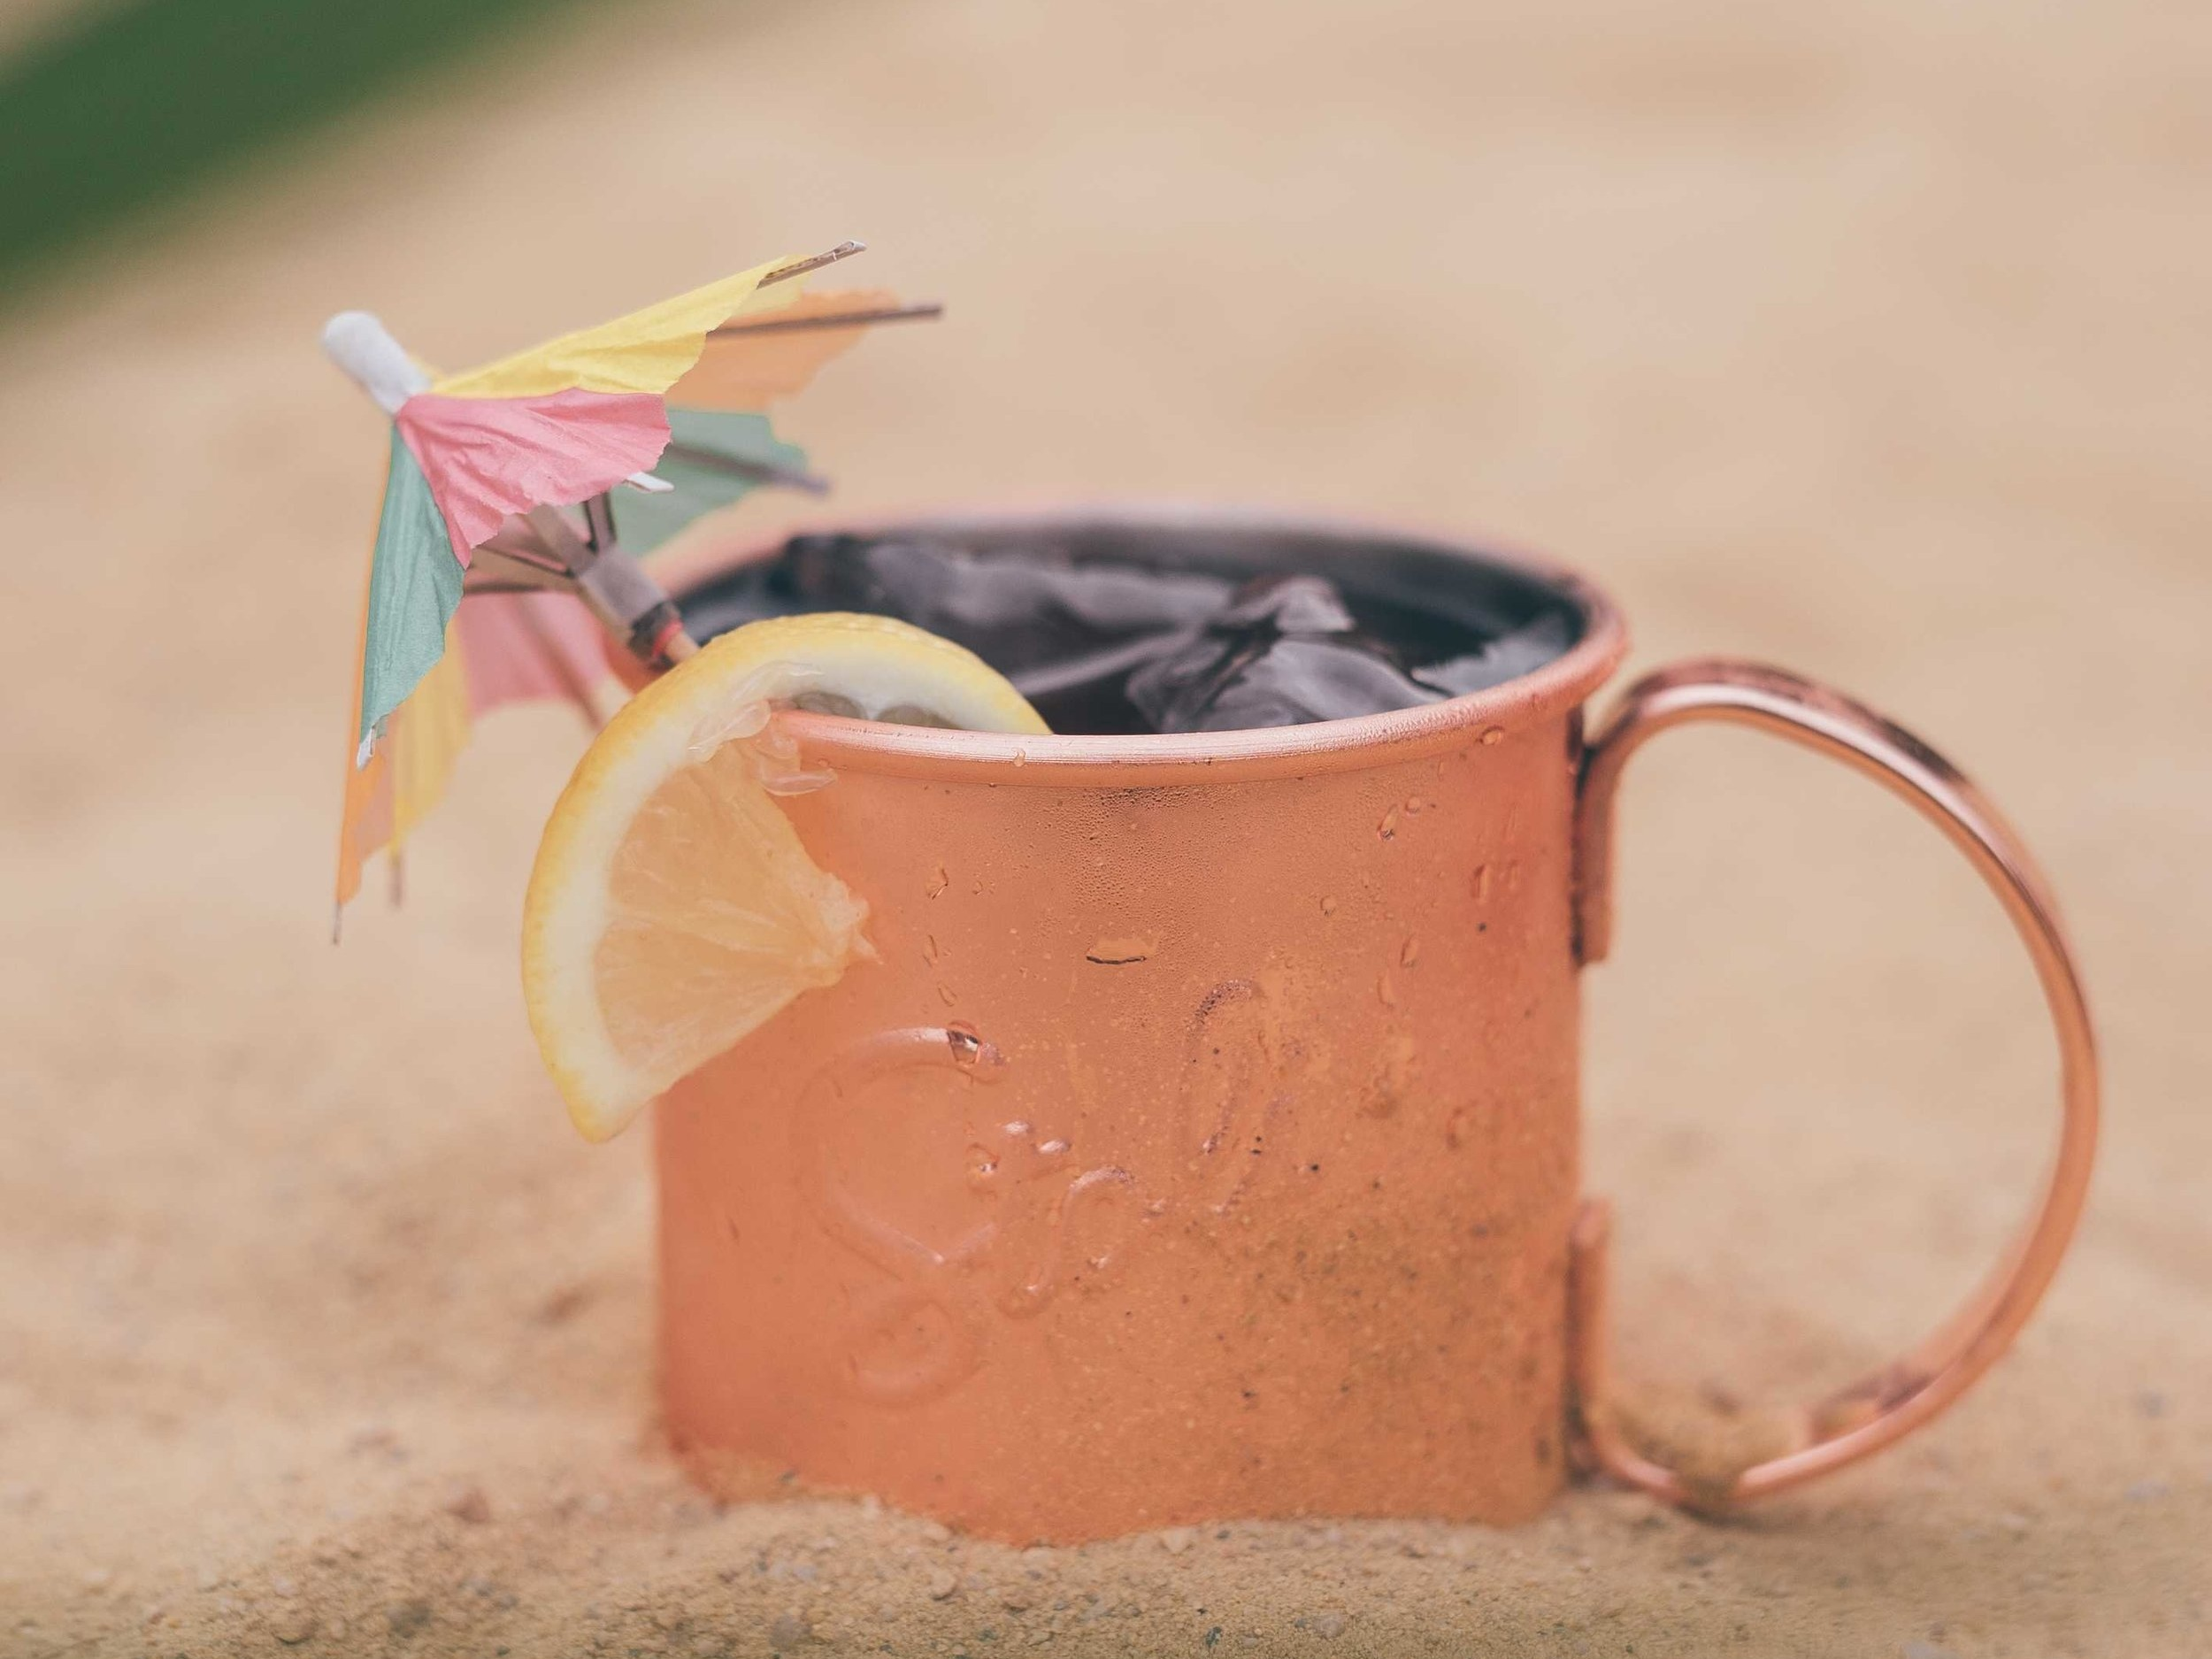 SUMMER cocktails - We've put together the most refreshing summer cocktail list you could imagine. Margaritas, our signature Rum Punch...come and share a jug with some friends.